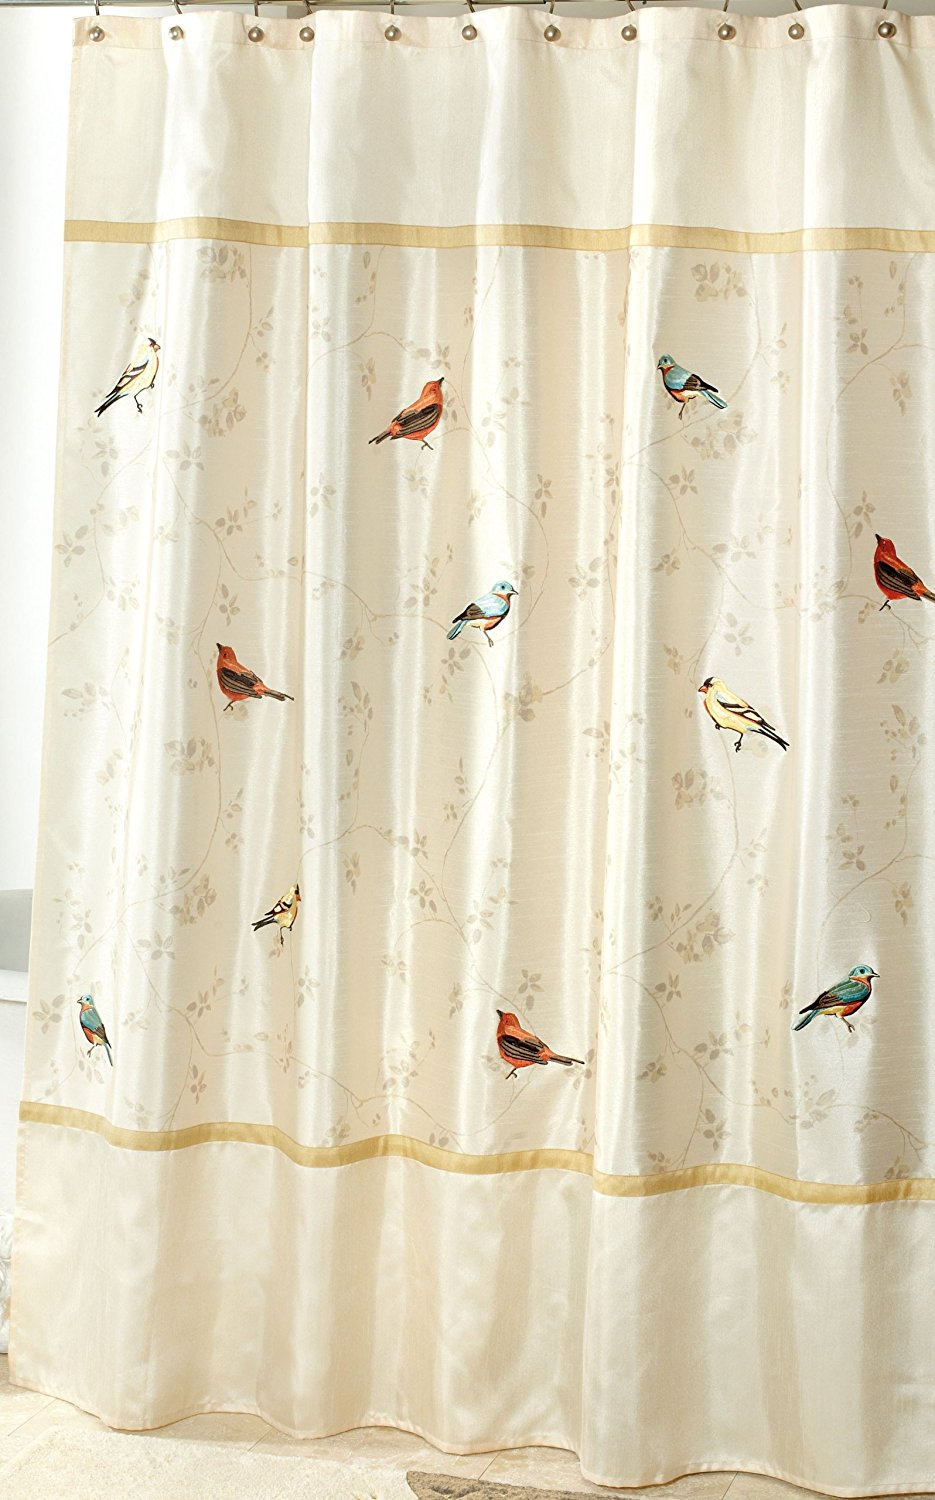 Us 17 65 Warm Tour Avanti Linens Gilded Birds Fashion Shower Curtain Polyester Curtain Hotel Bathroom With Hooks Ring72 X72 Inch In Shower